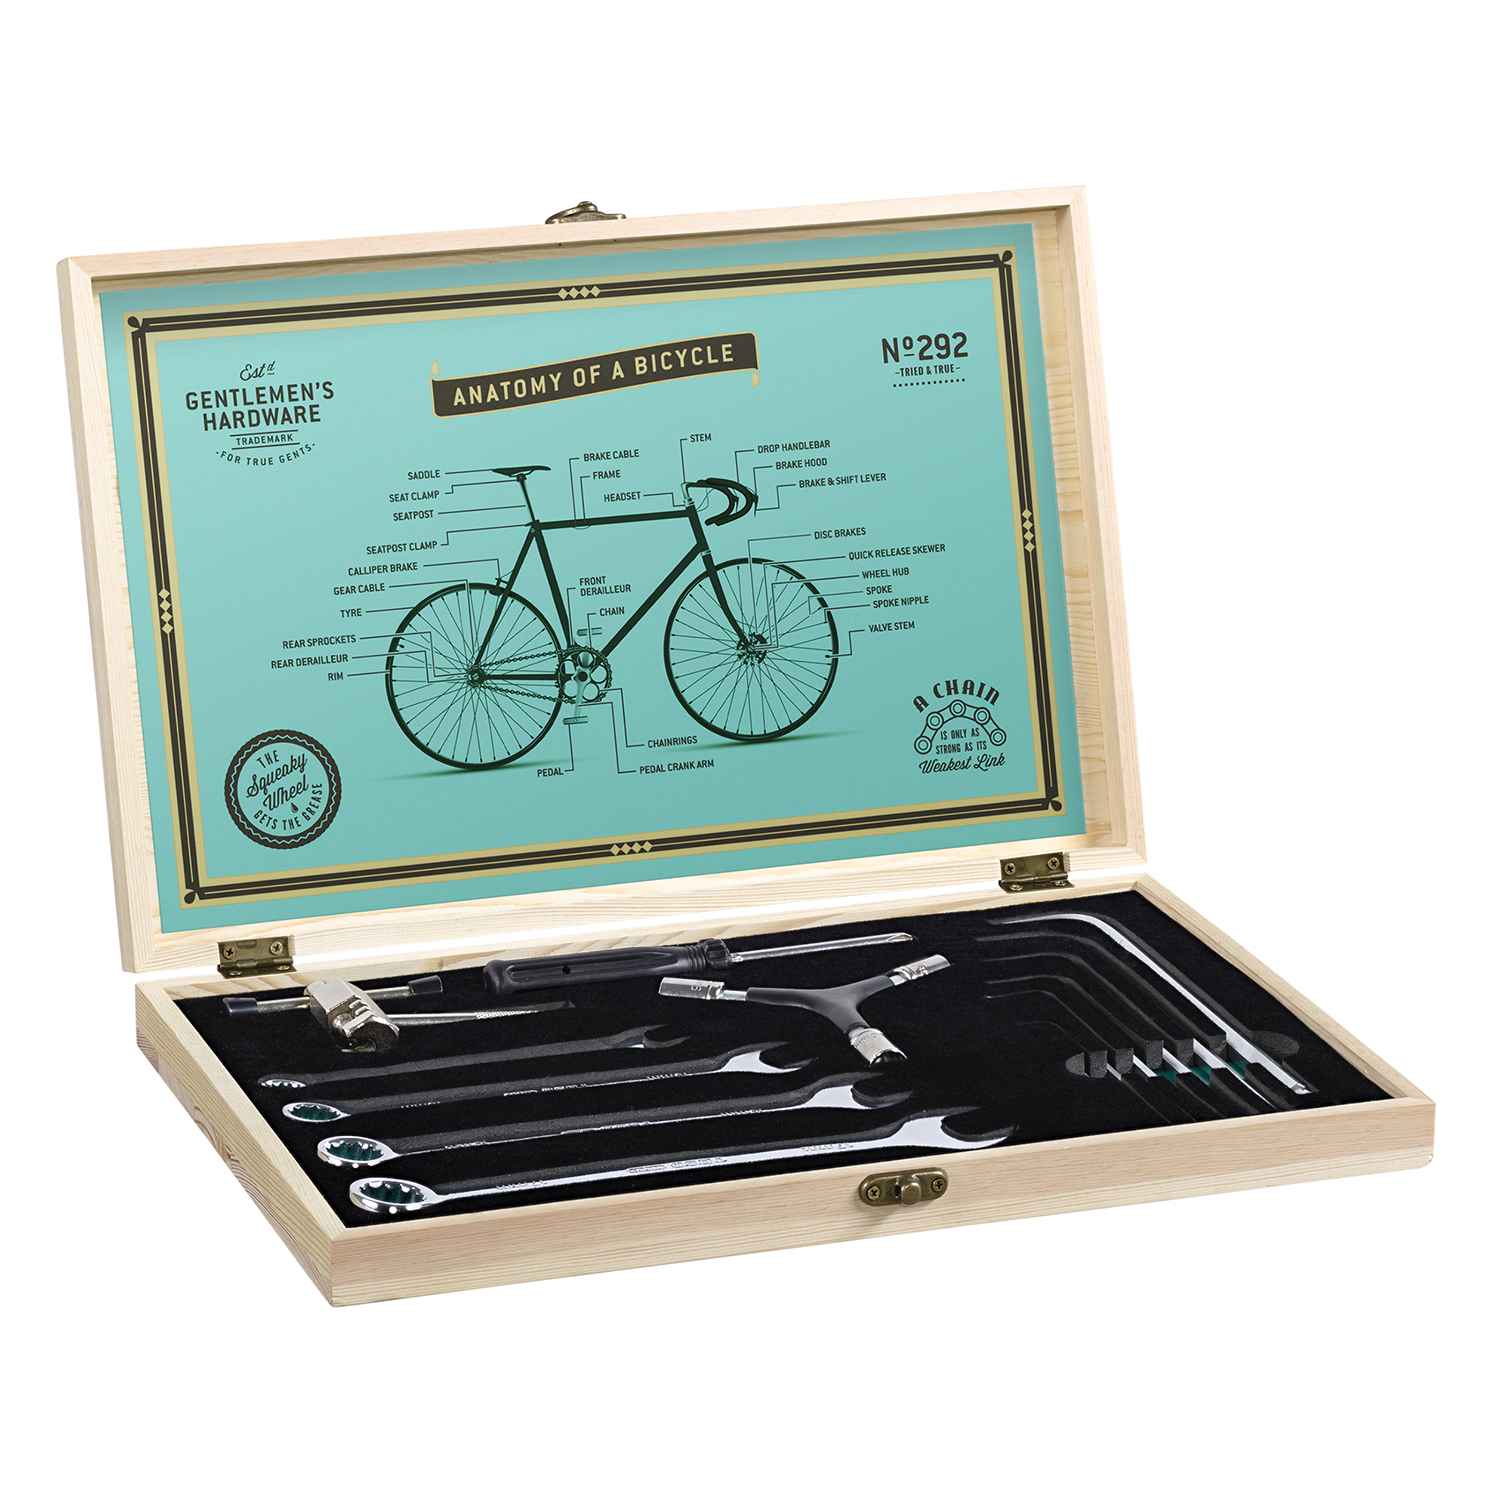 Gentlemen's Hardware – Bicycle Tool Kit in Wooden Box with 16 Stainless Steel Tools